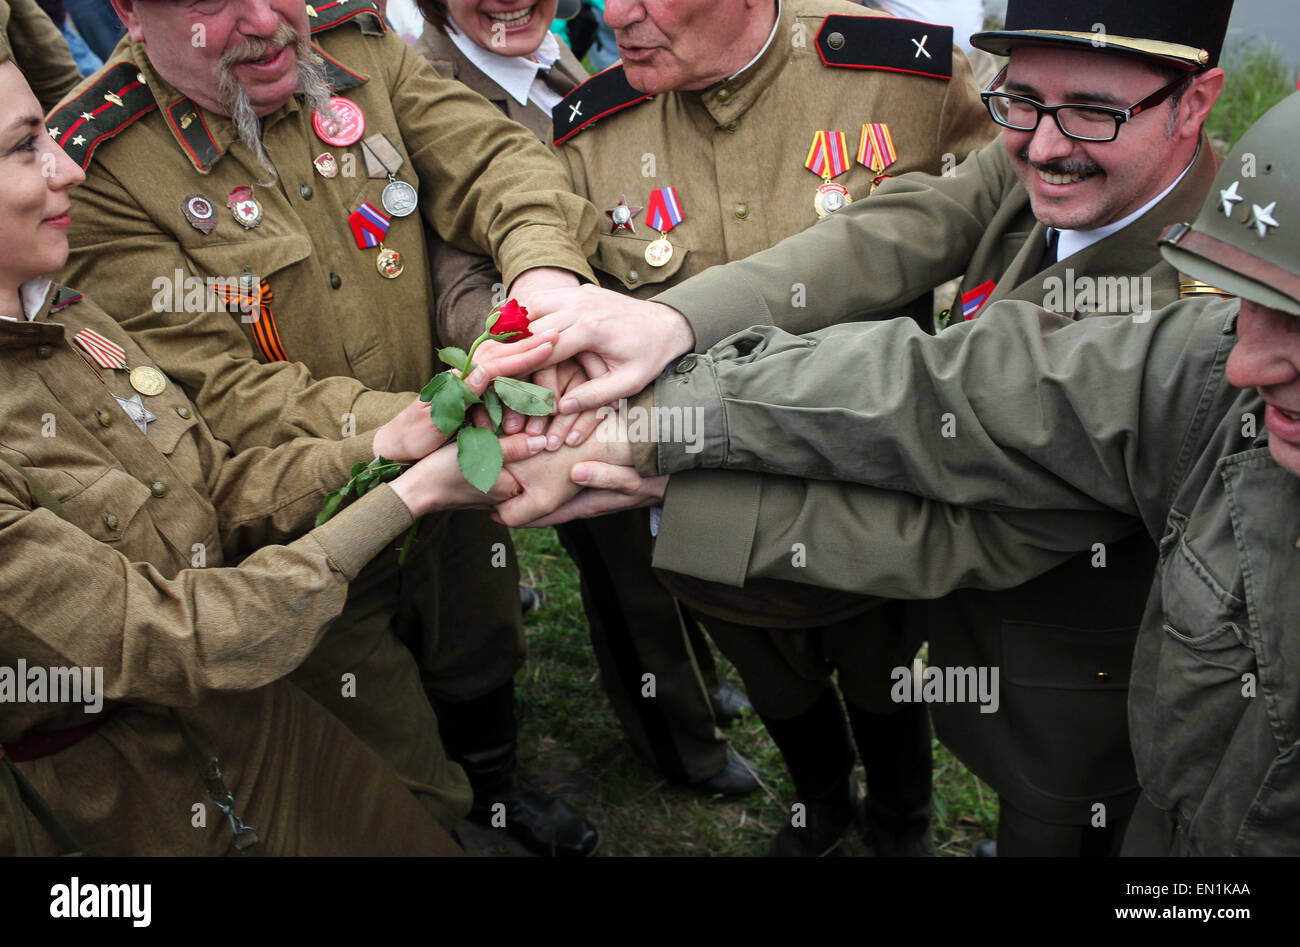 Torgau, Germany. 25th Apr, 2015. Amateur actors wearing military uniforms of allied forces hold a rose together Stock Photo